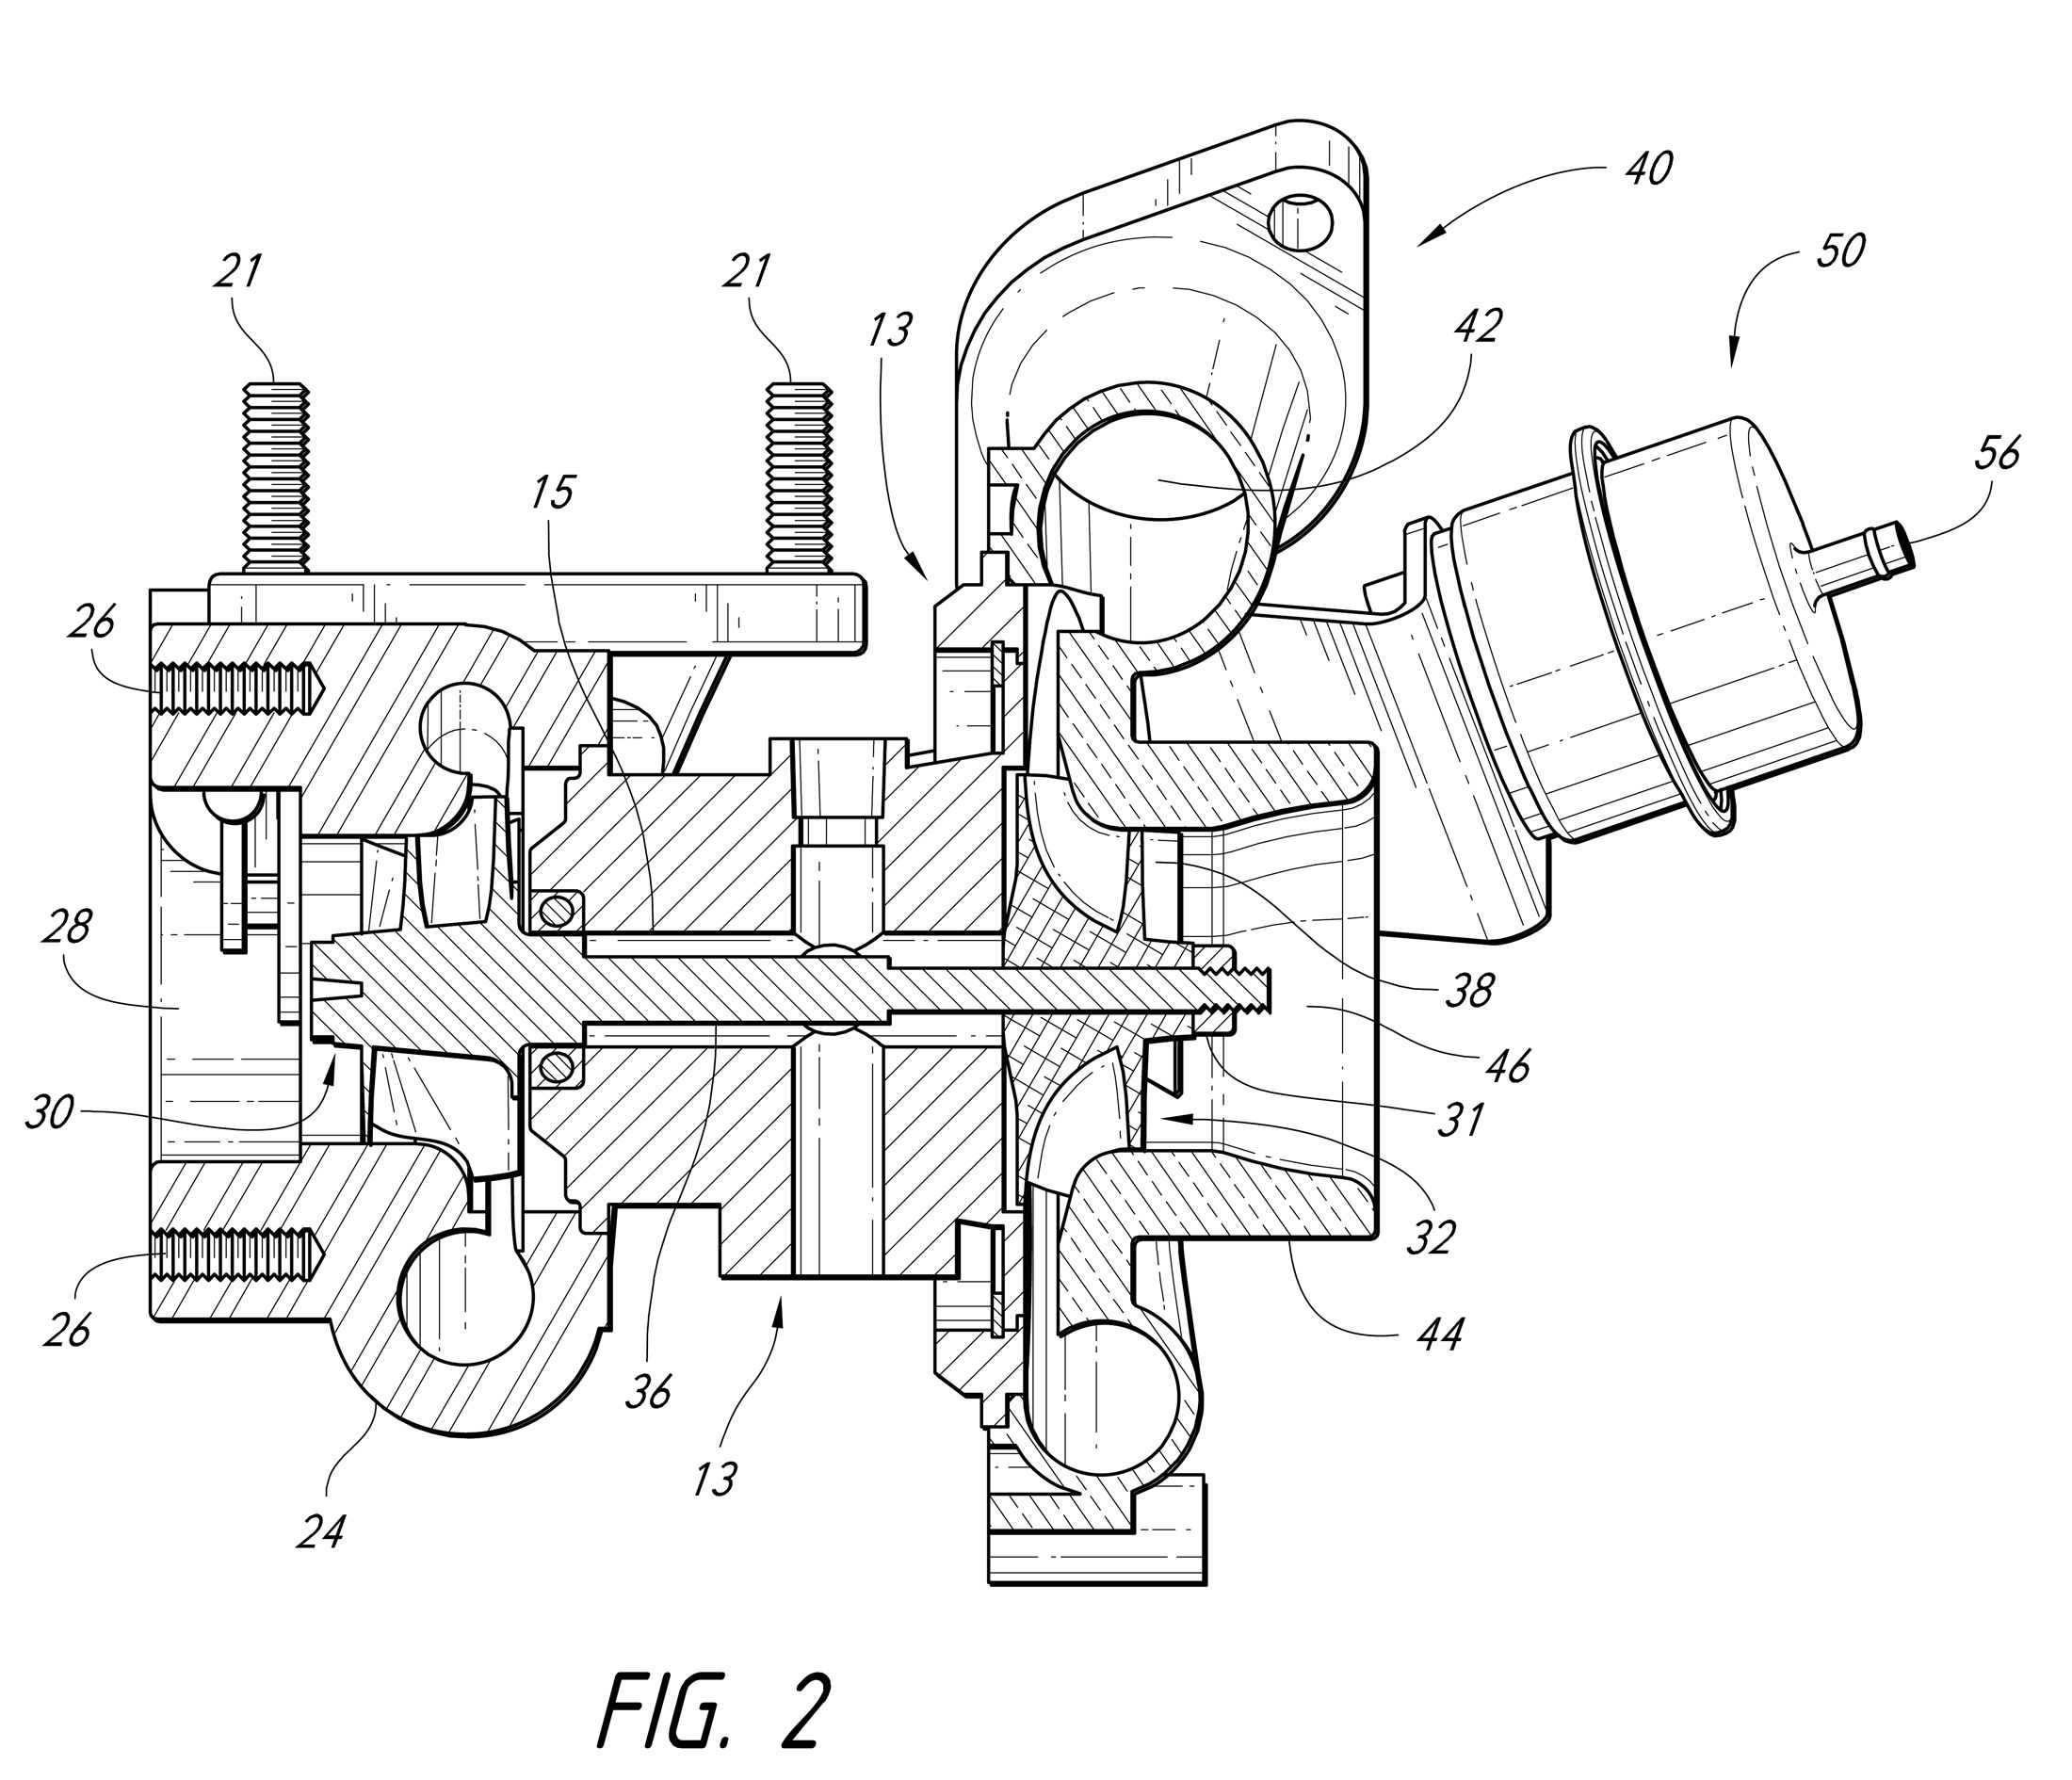 Turbocharger Drawing Ql6n51ew